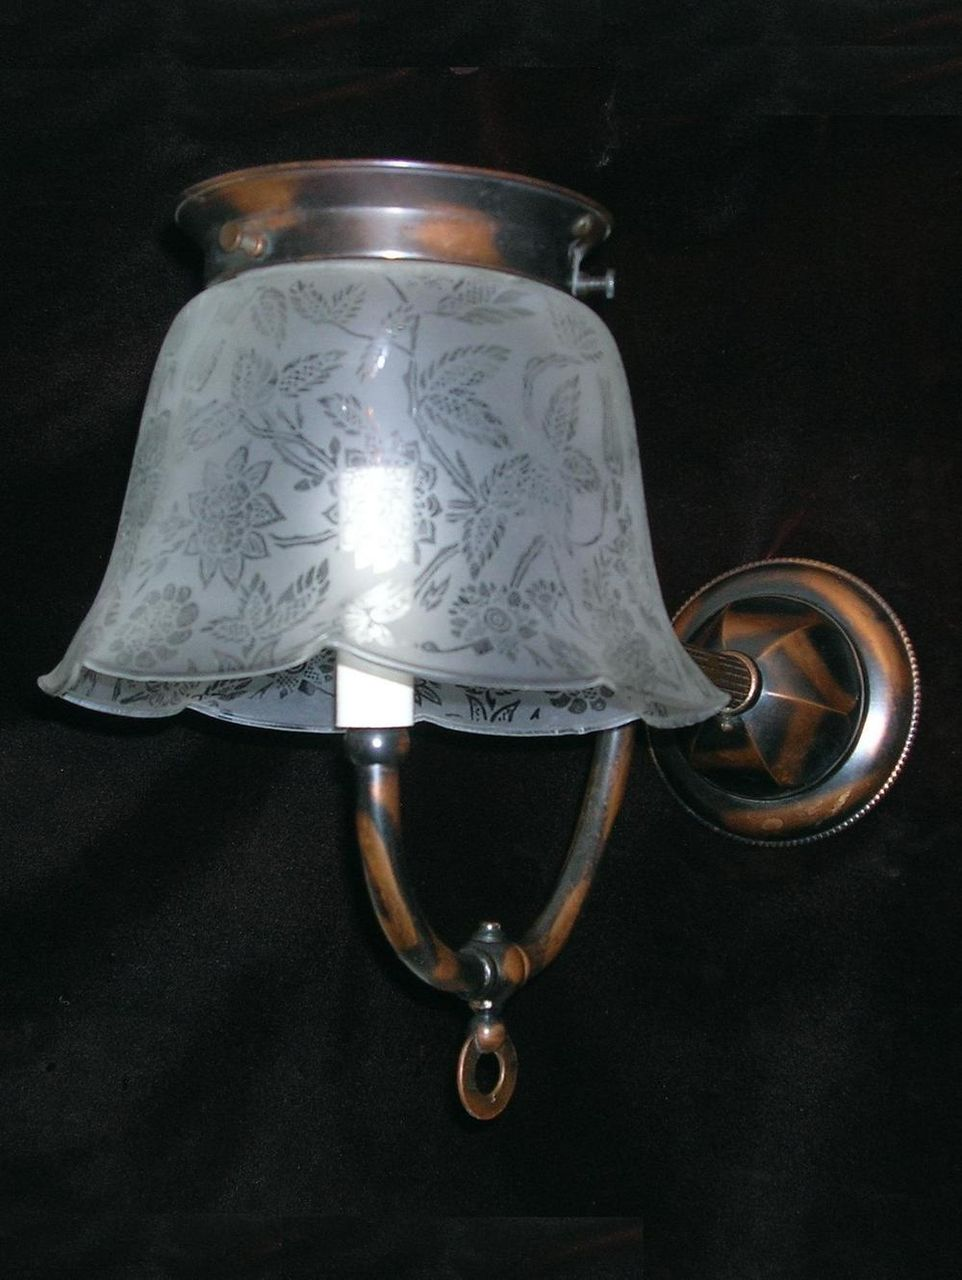 Antique Gas Wall Sconces : Antique Electrified Gas Wall Sconce from rubylane-sold on Ruby Lane